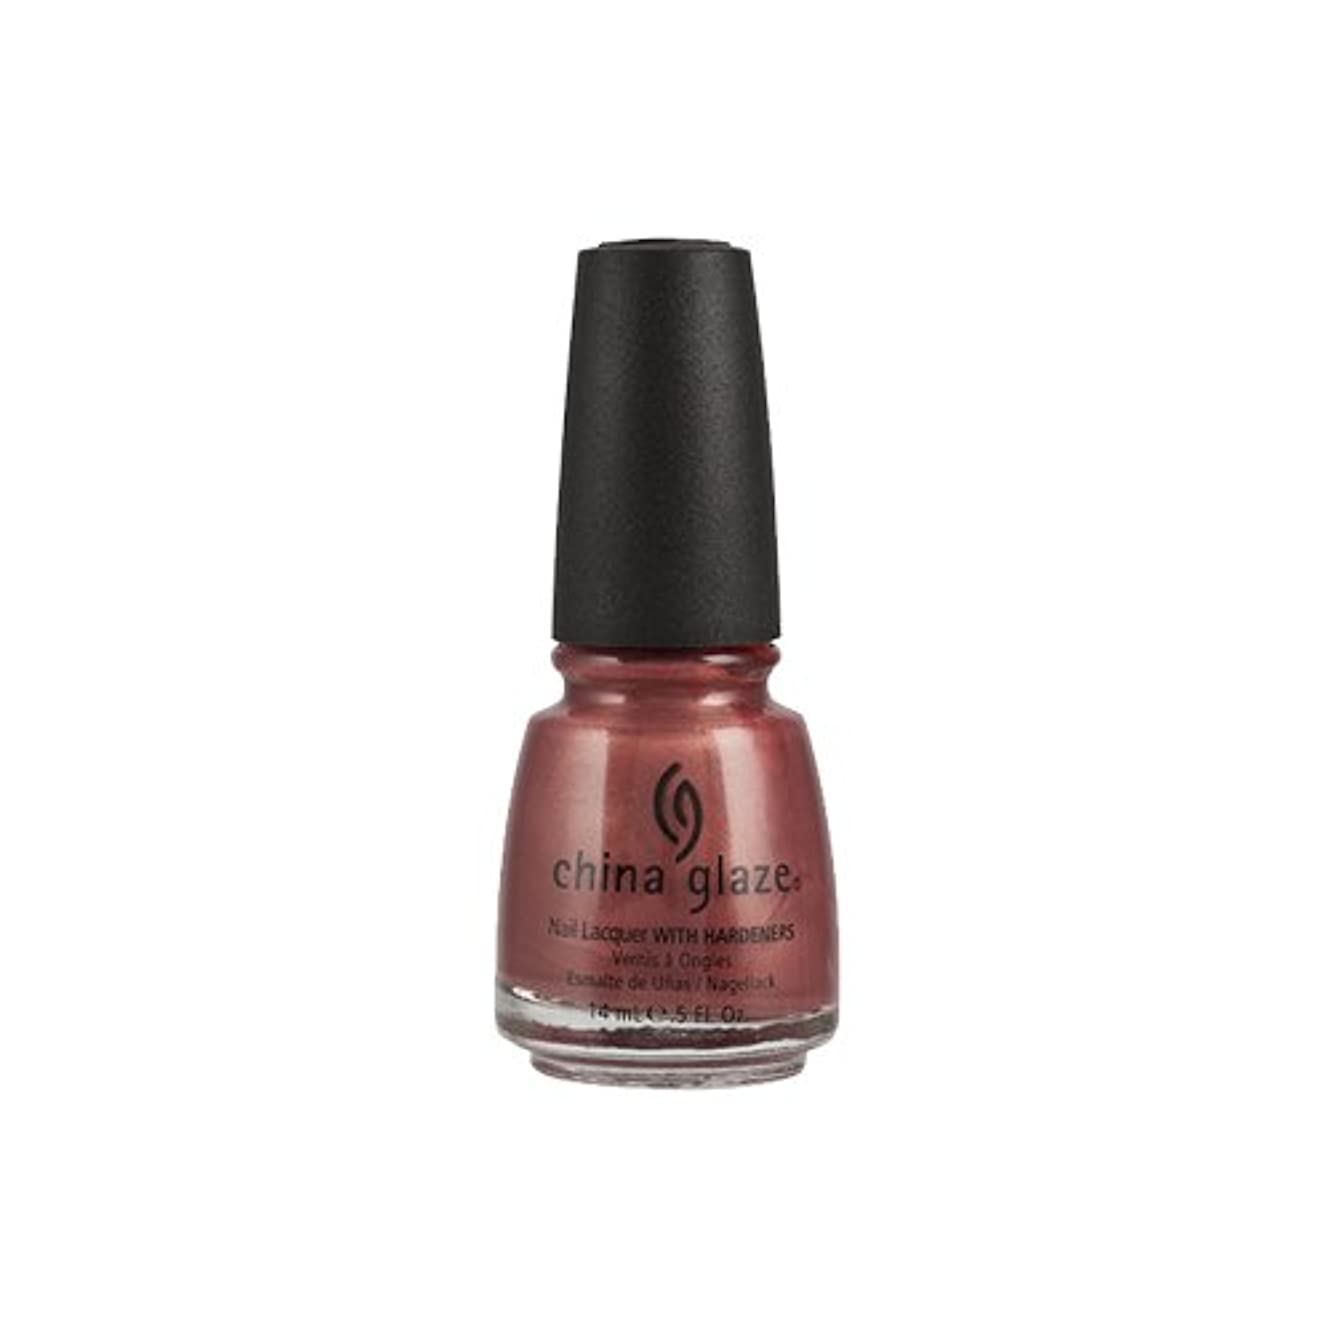 CHINA GLAZE Nail Lacquer with Nail Hardner - Your Touch (並行輸入品)